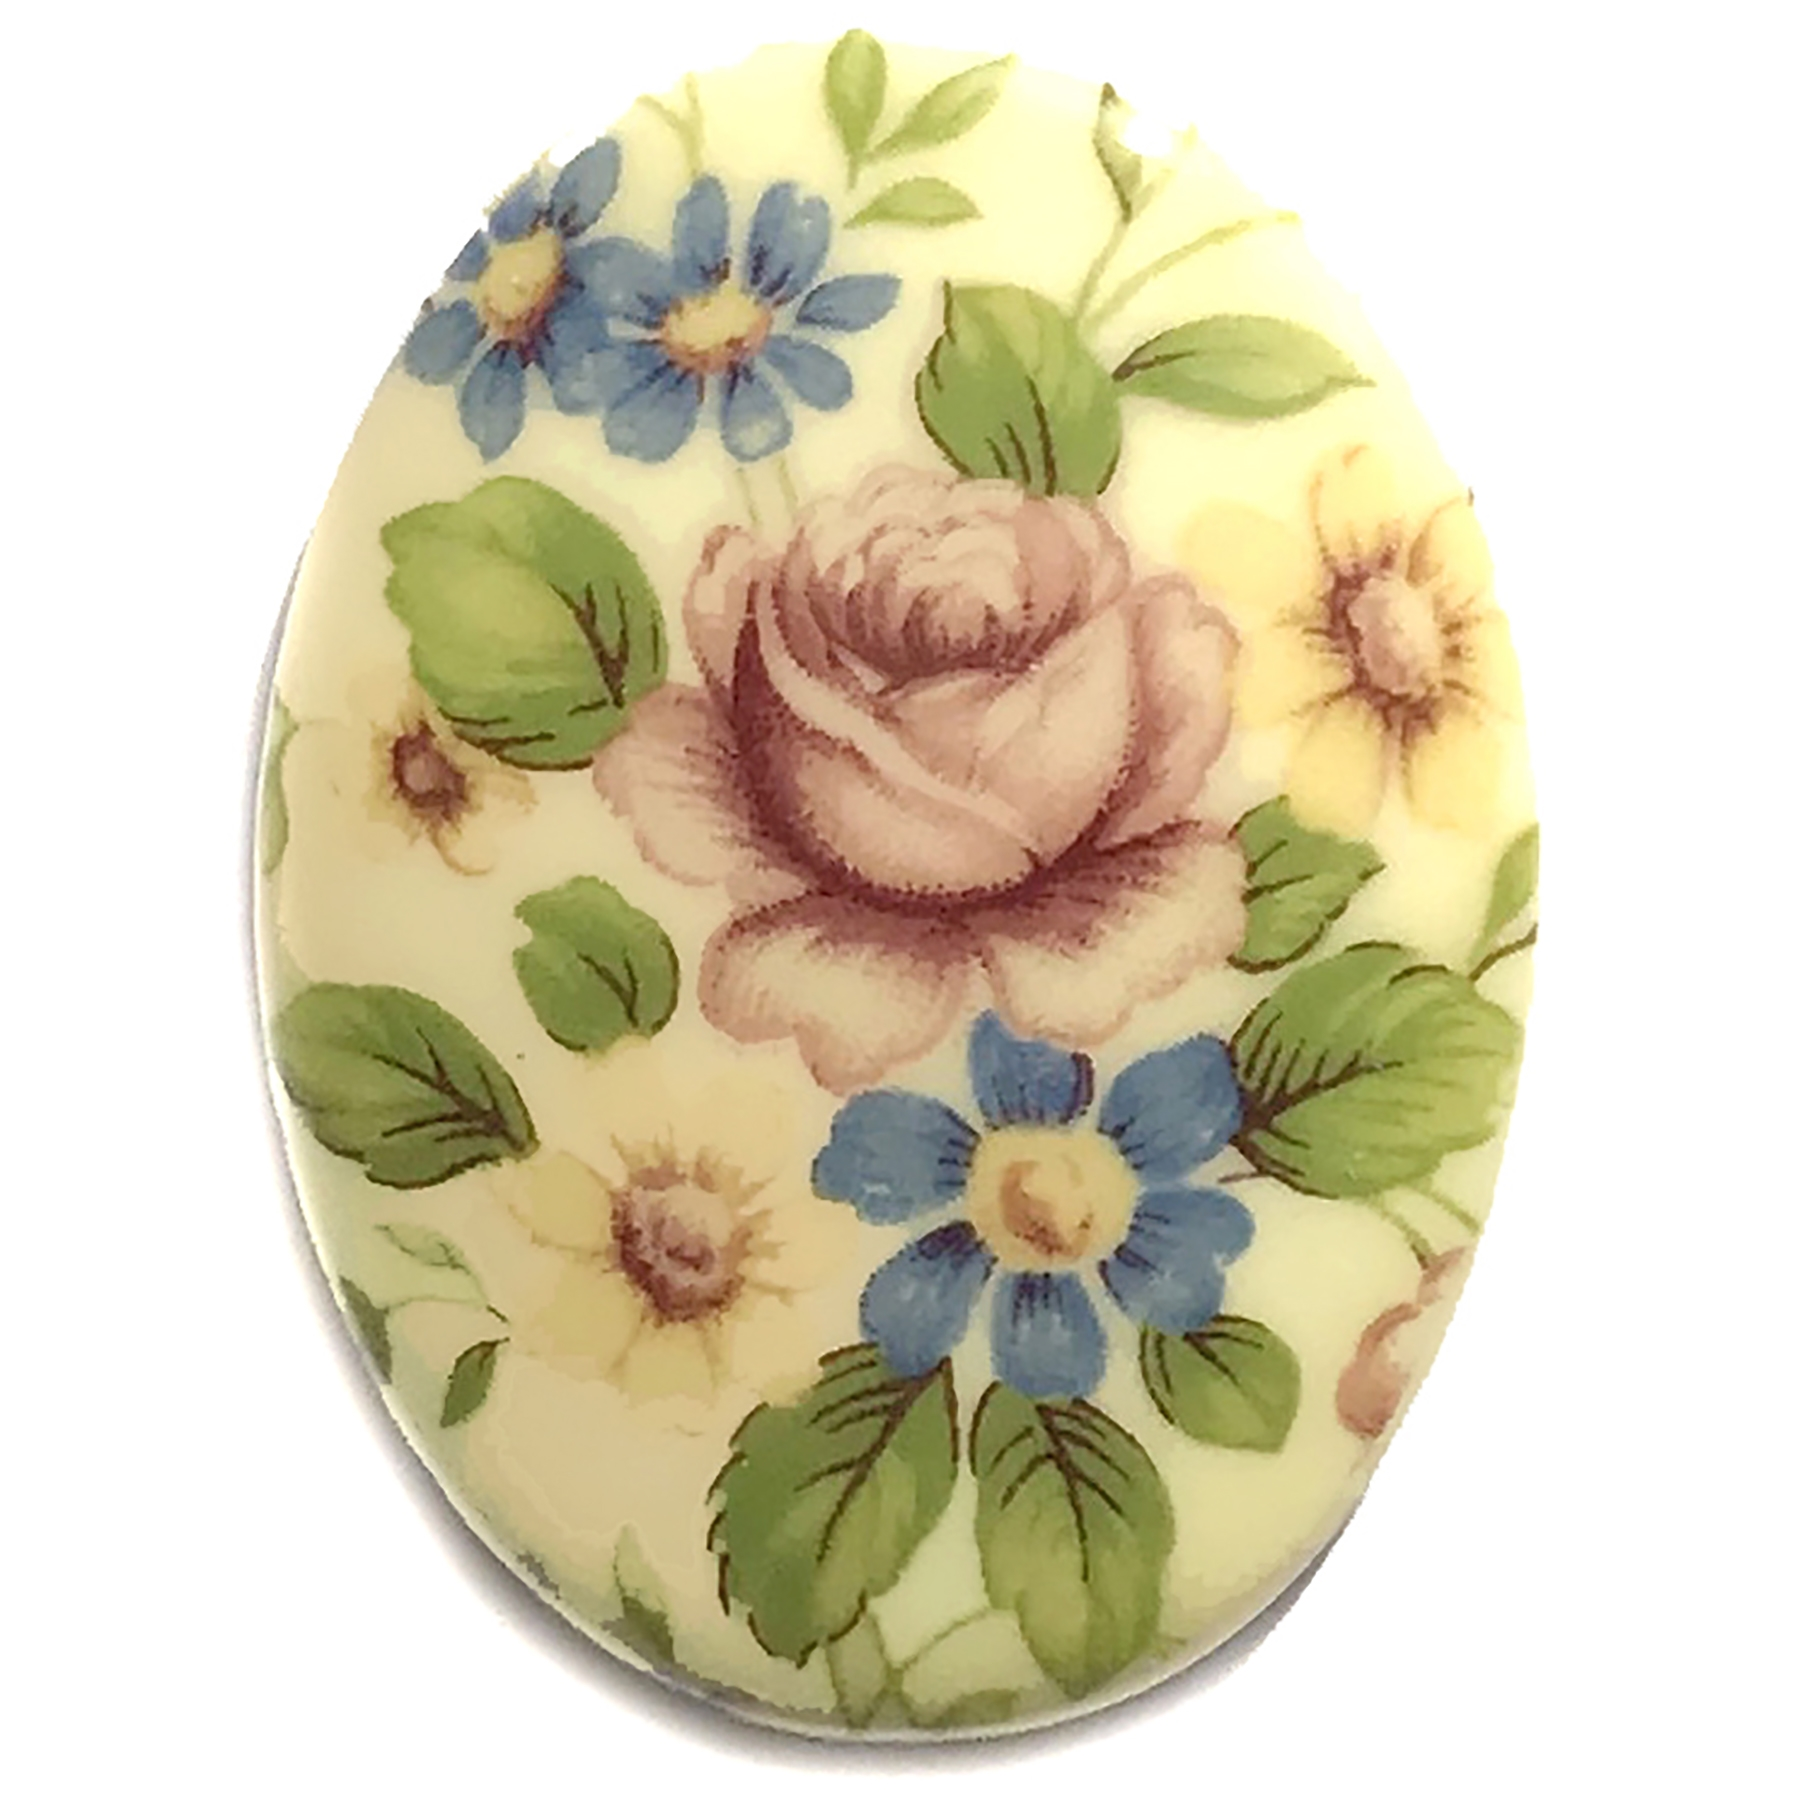 vintage floral cameo, plastic, pink, blue, yellow, cameo, 40x30mm, decal, german decal, yellow base, flower cameo, green leafs, flatback, B'sue Boutiques, vintage supplies, jewelry supplies, jewelry findings, vintage cameo, jewelry making, 03159